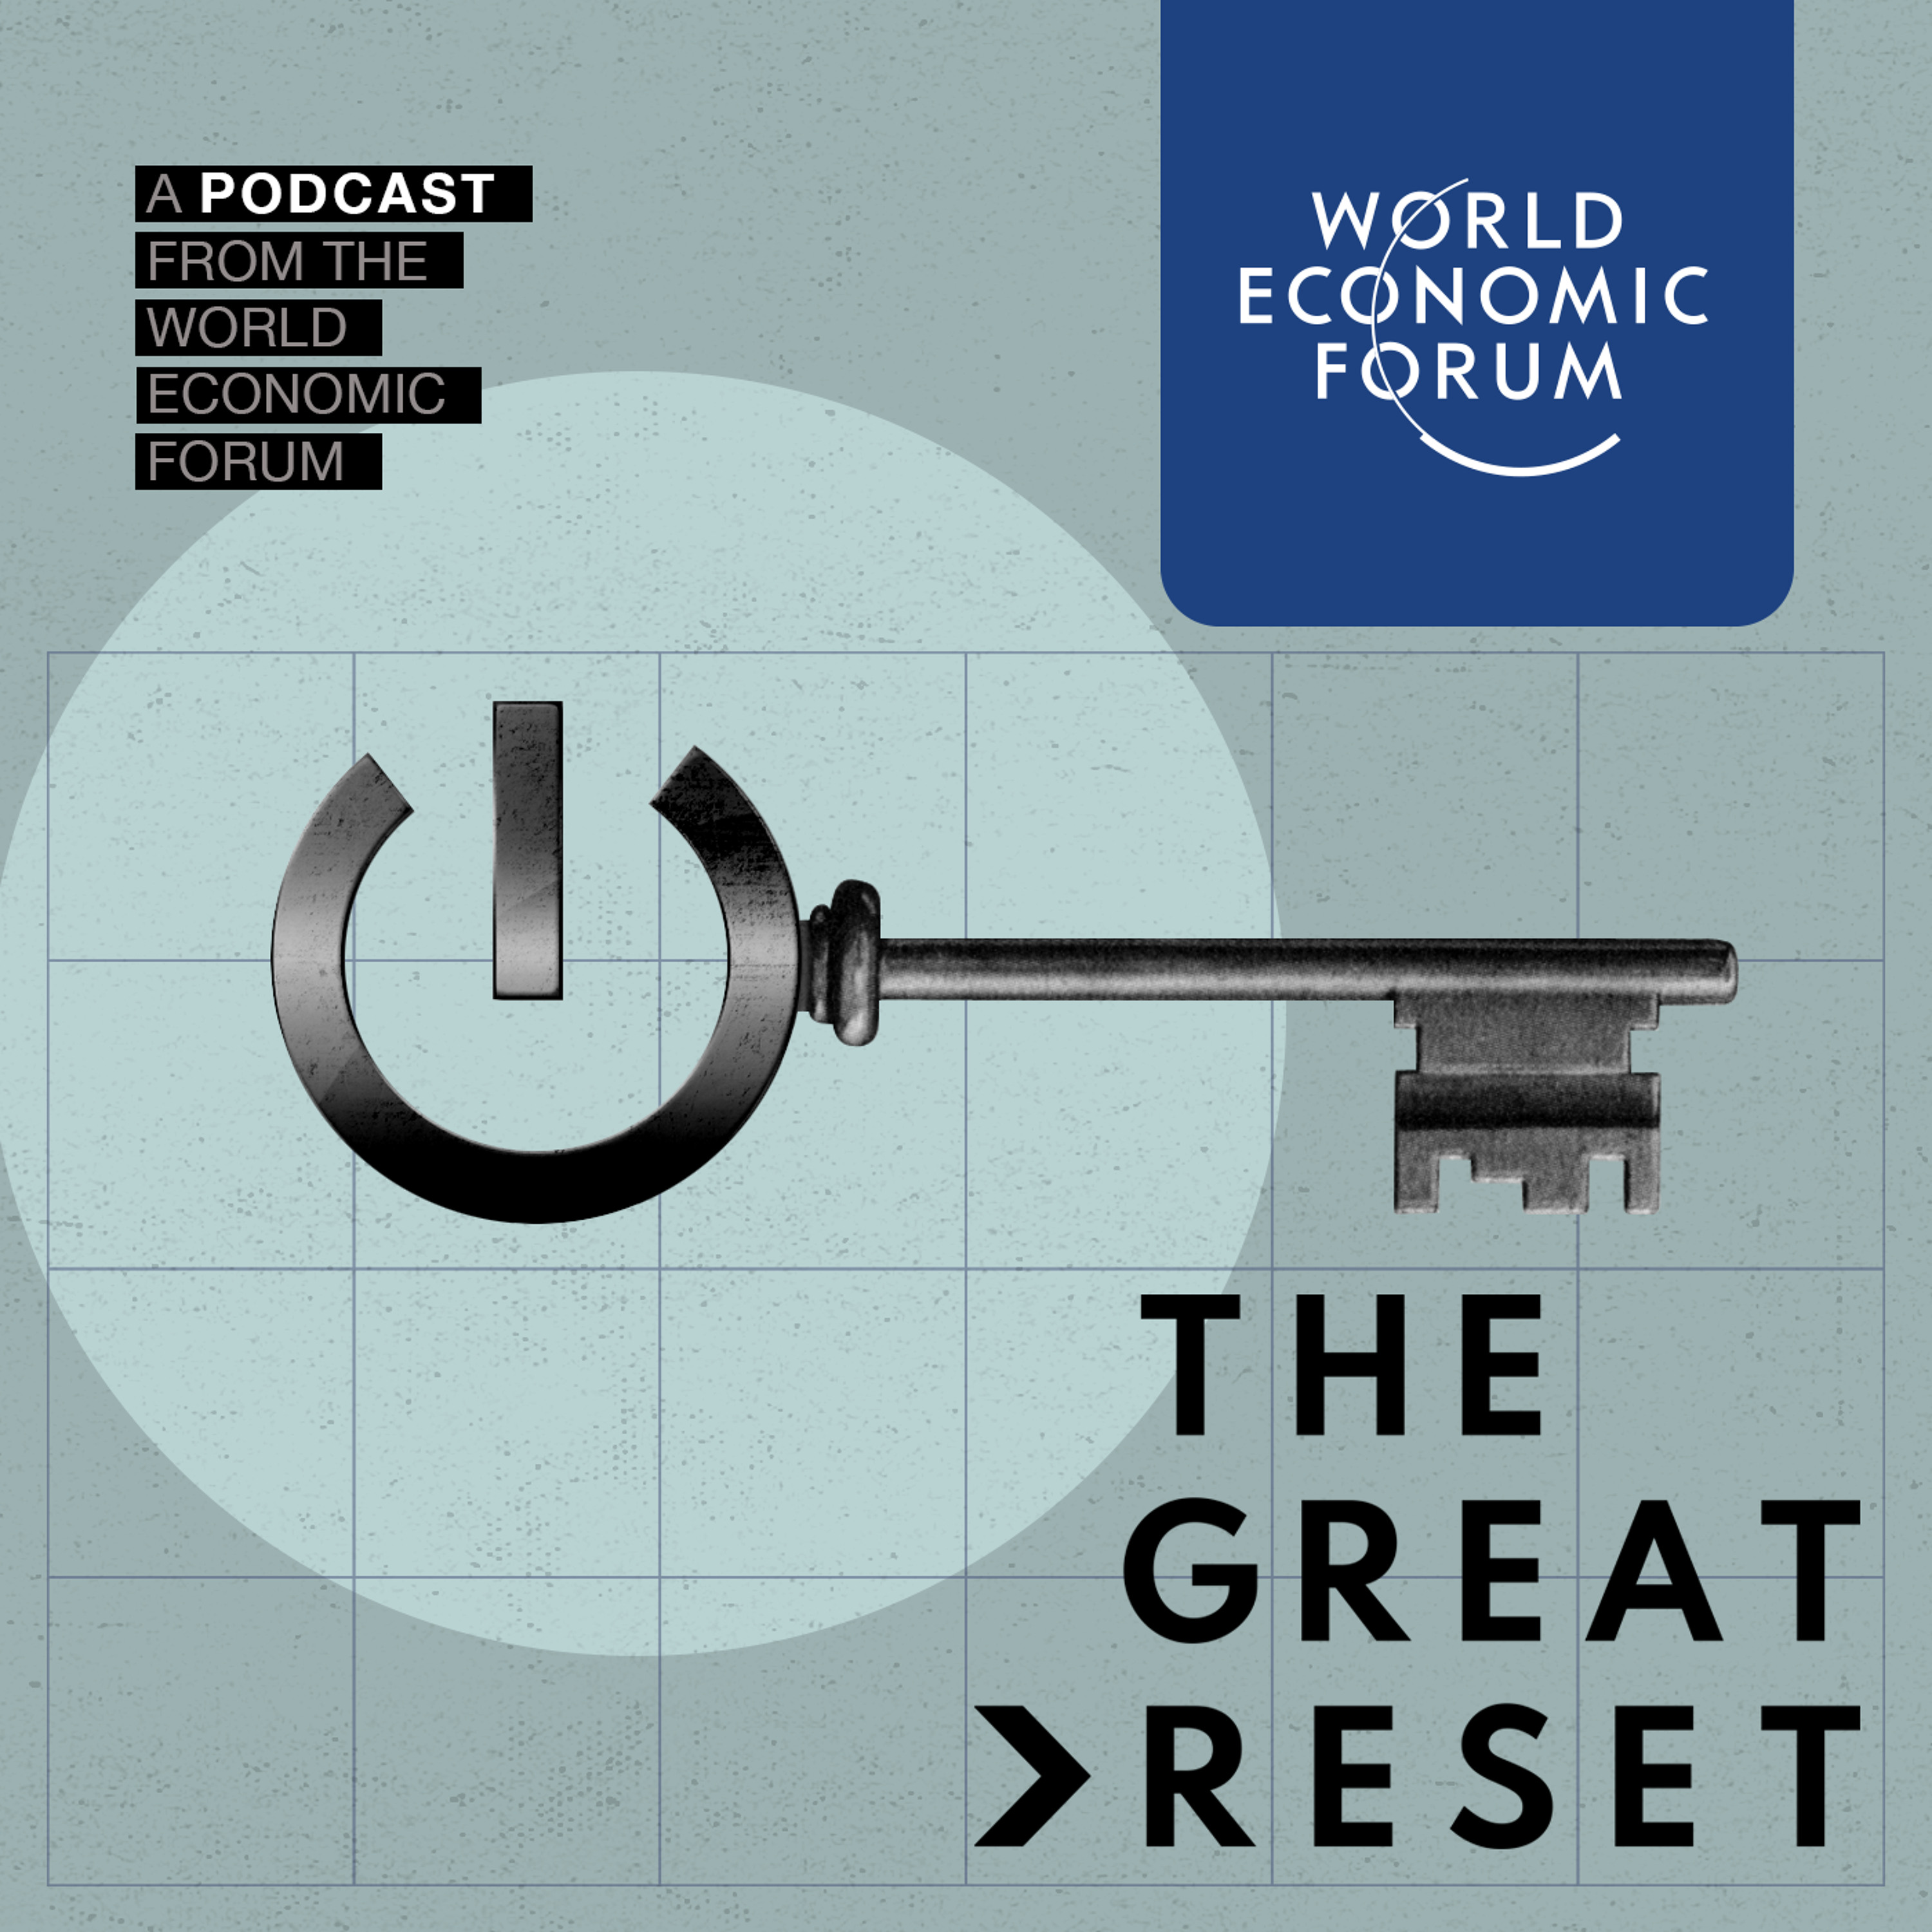 The Great Reset: Sustainable Development Impact Summit - Day 4